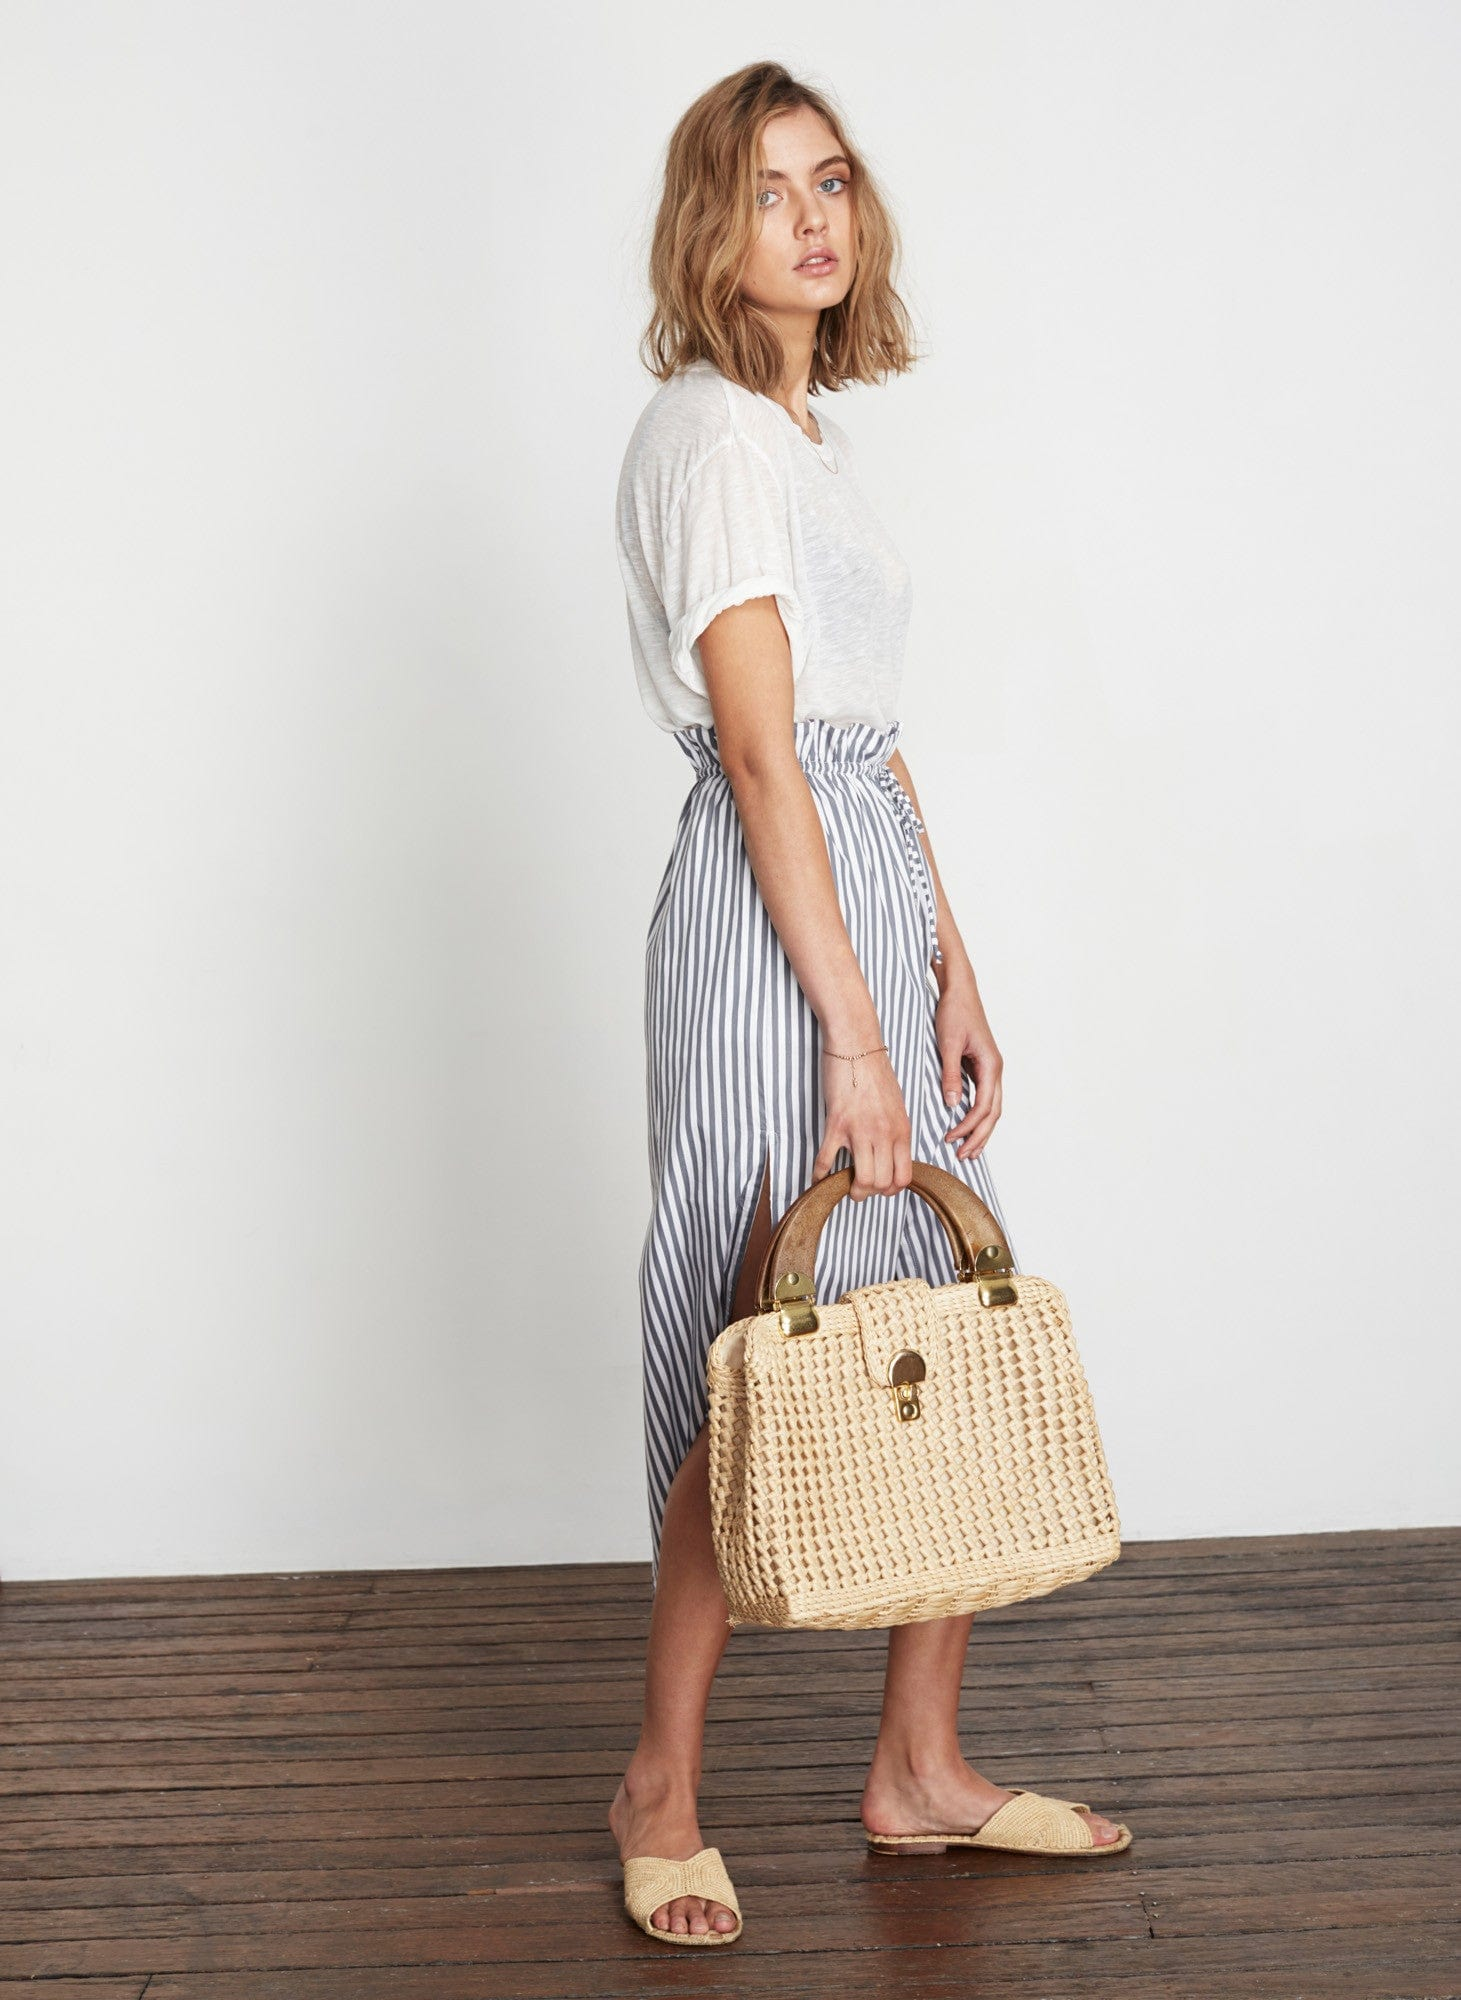 BRIGHTON STRIPE - GREY - THASSIA SKIRT